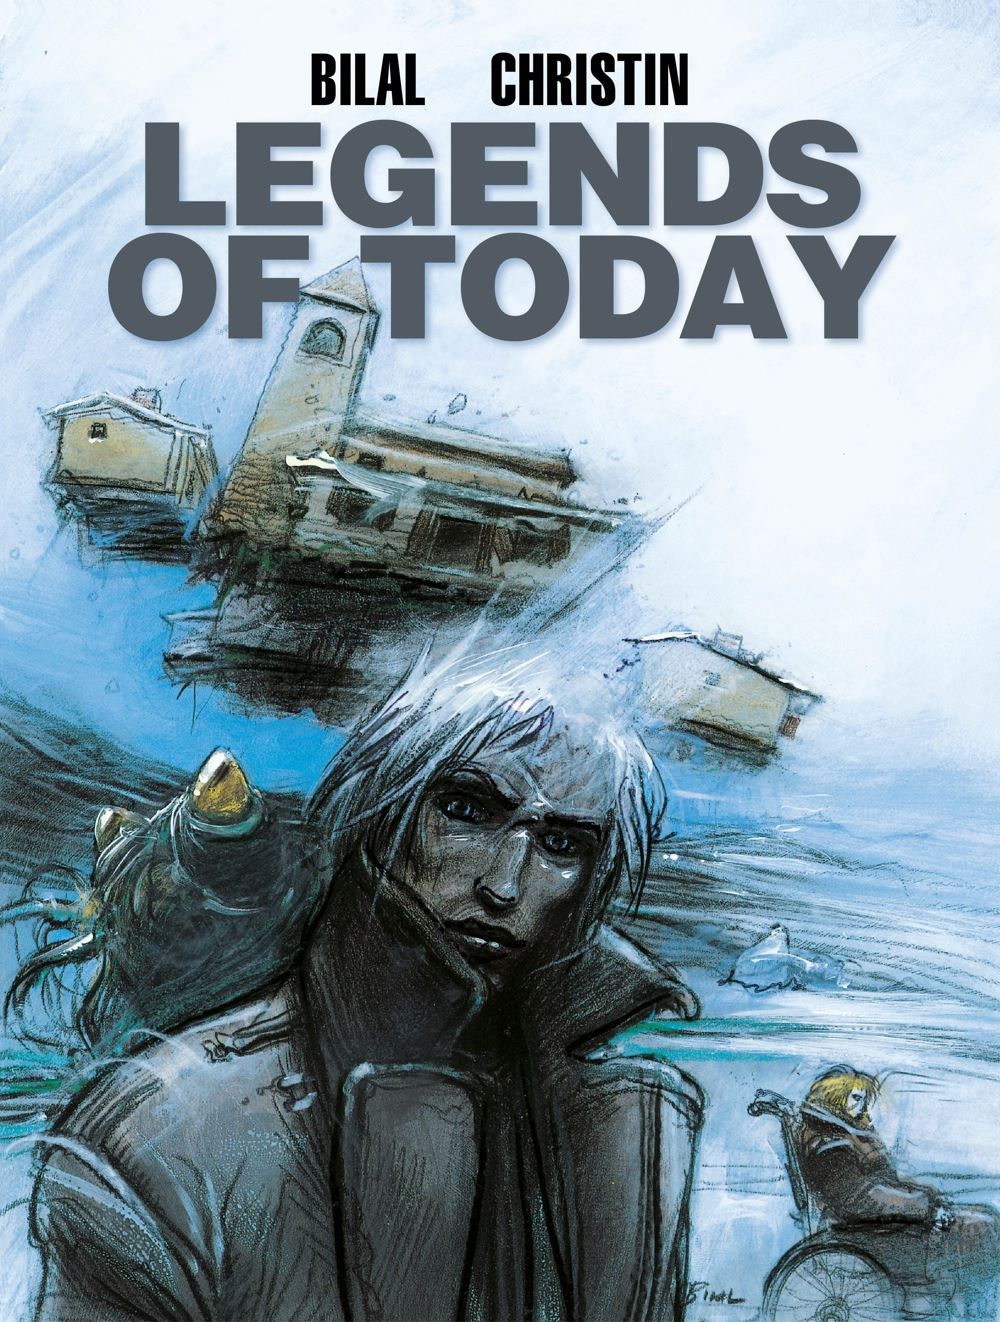 9781785868740-2 ComicList Previews: ENKI BILAL LIBRARY VOLUME 1 LEGENDS OF TODAY HC